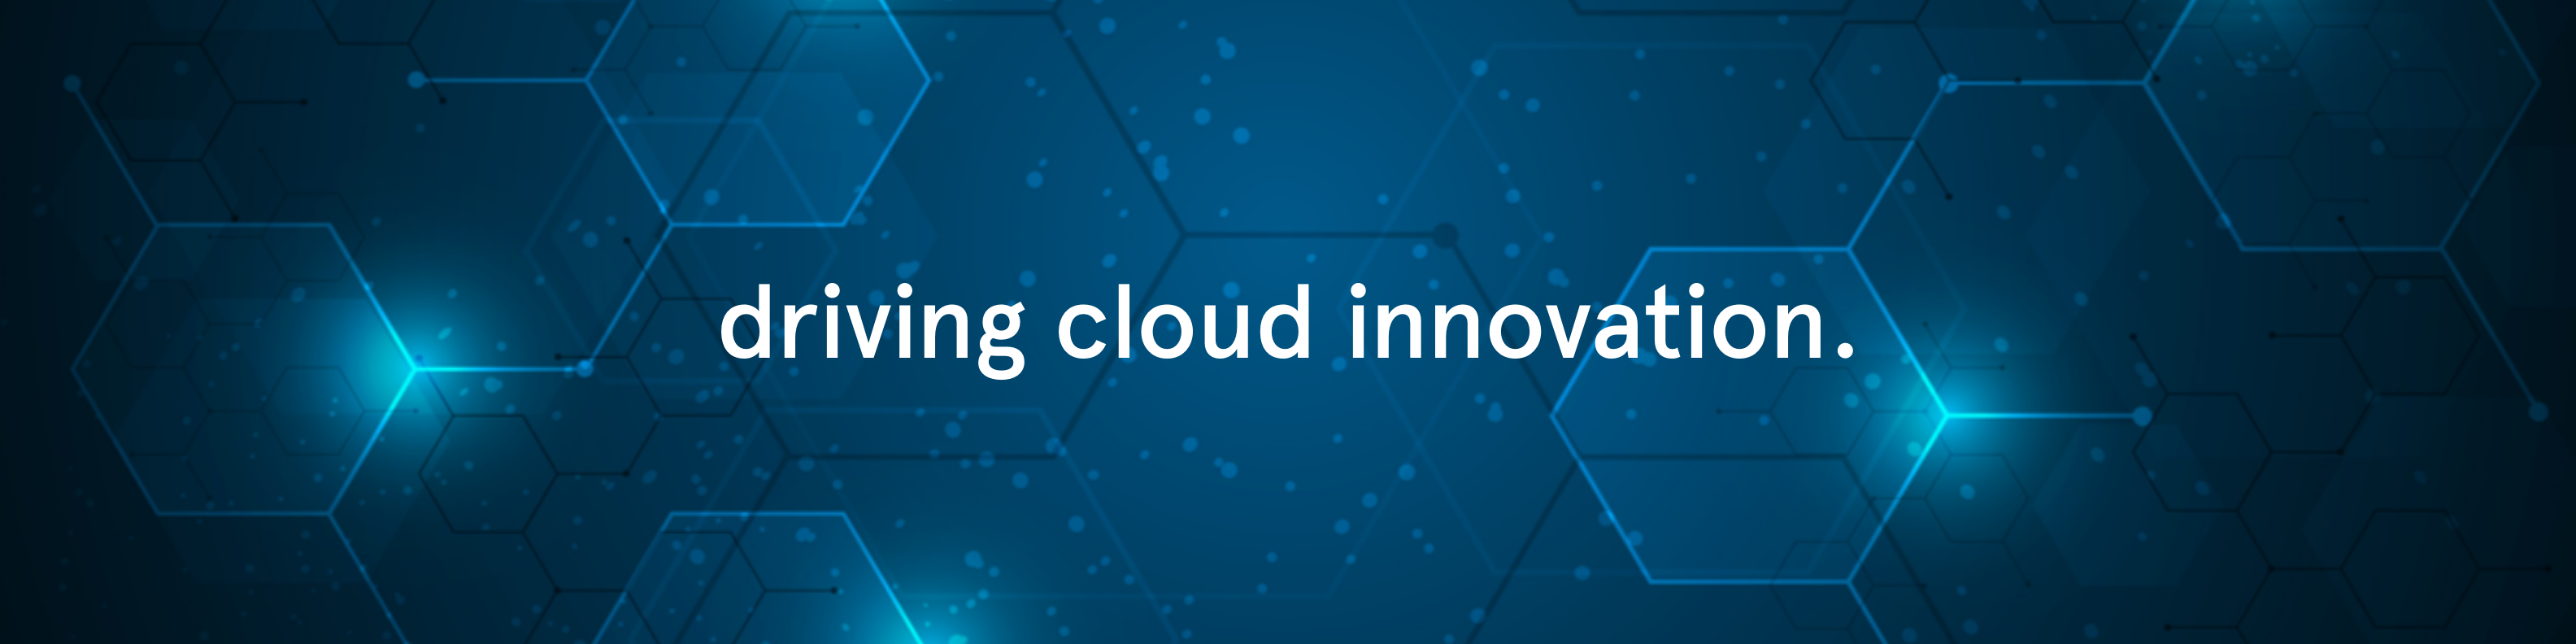 Header image with claim driving cloud innovation.